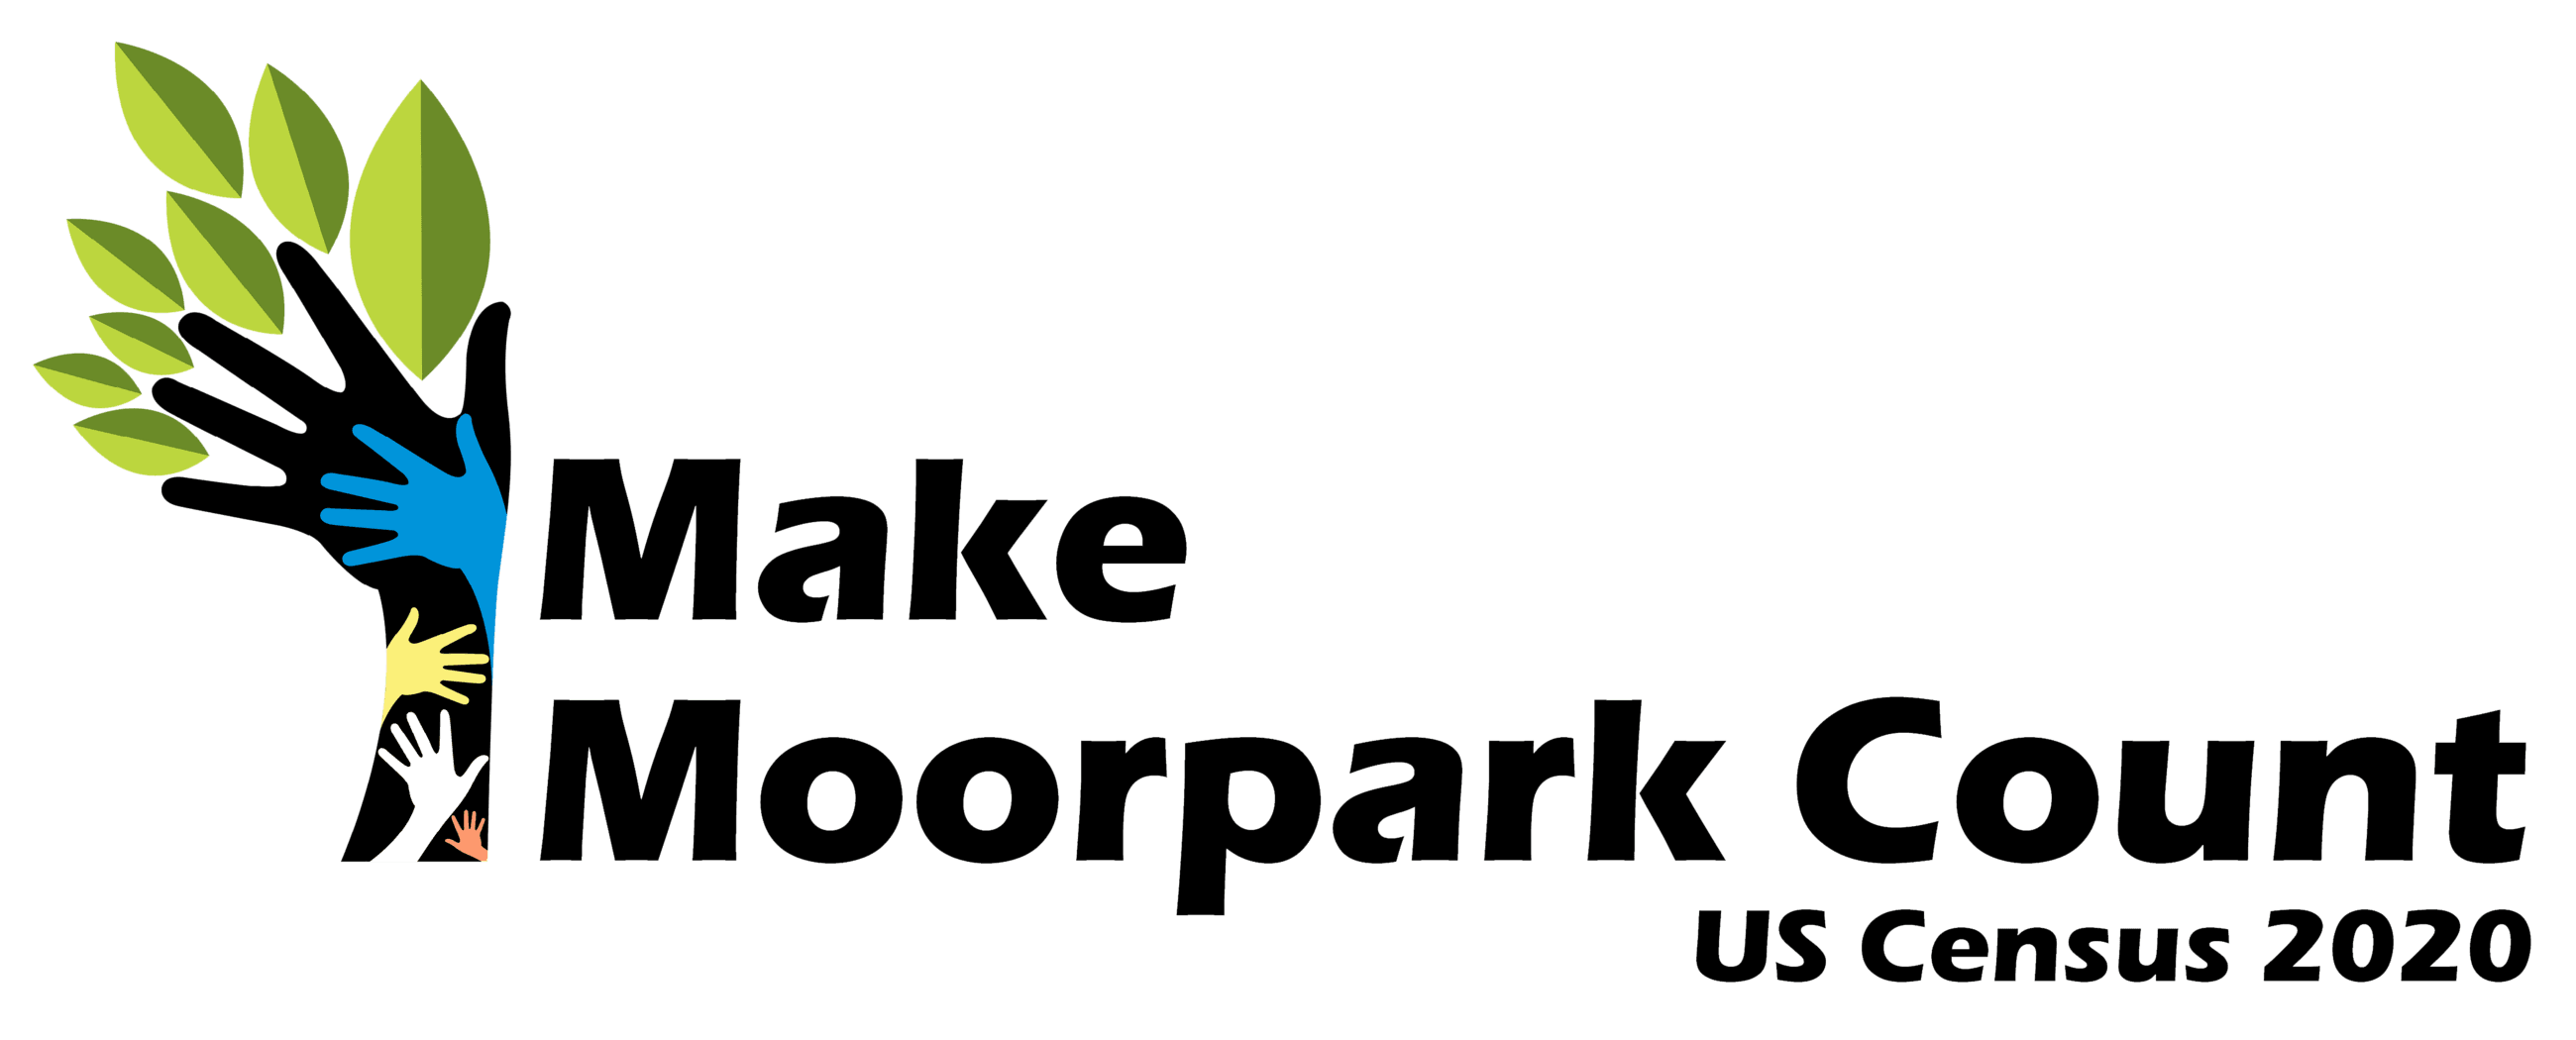 Census 2020 Moorpark Logo (Transparent)